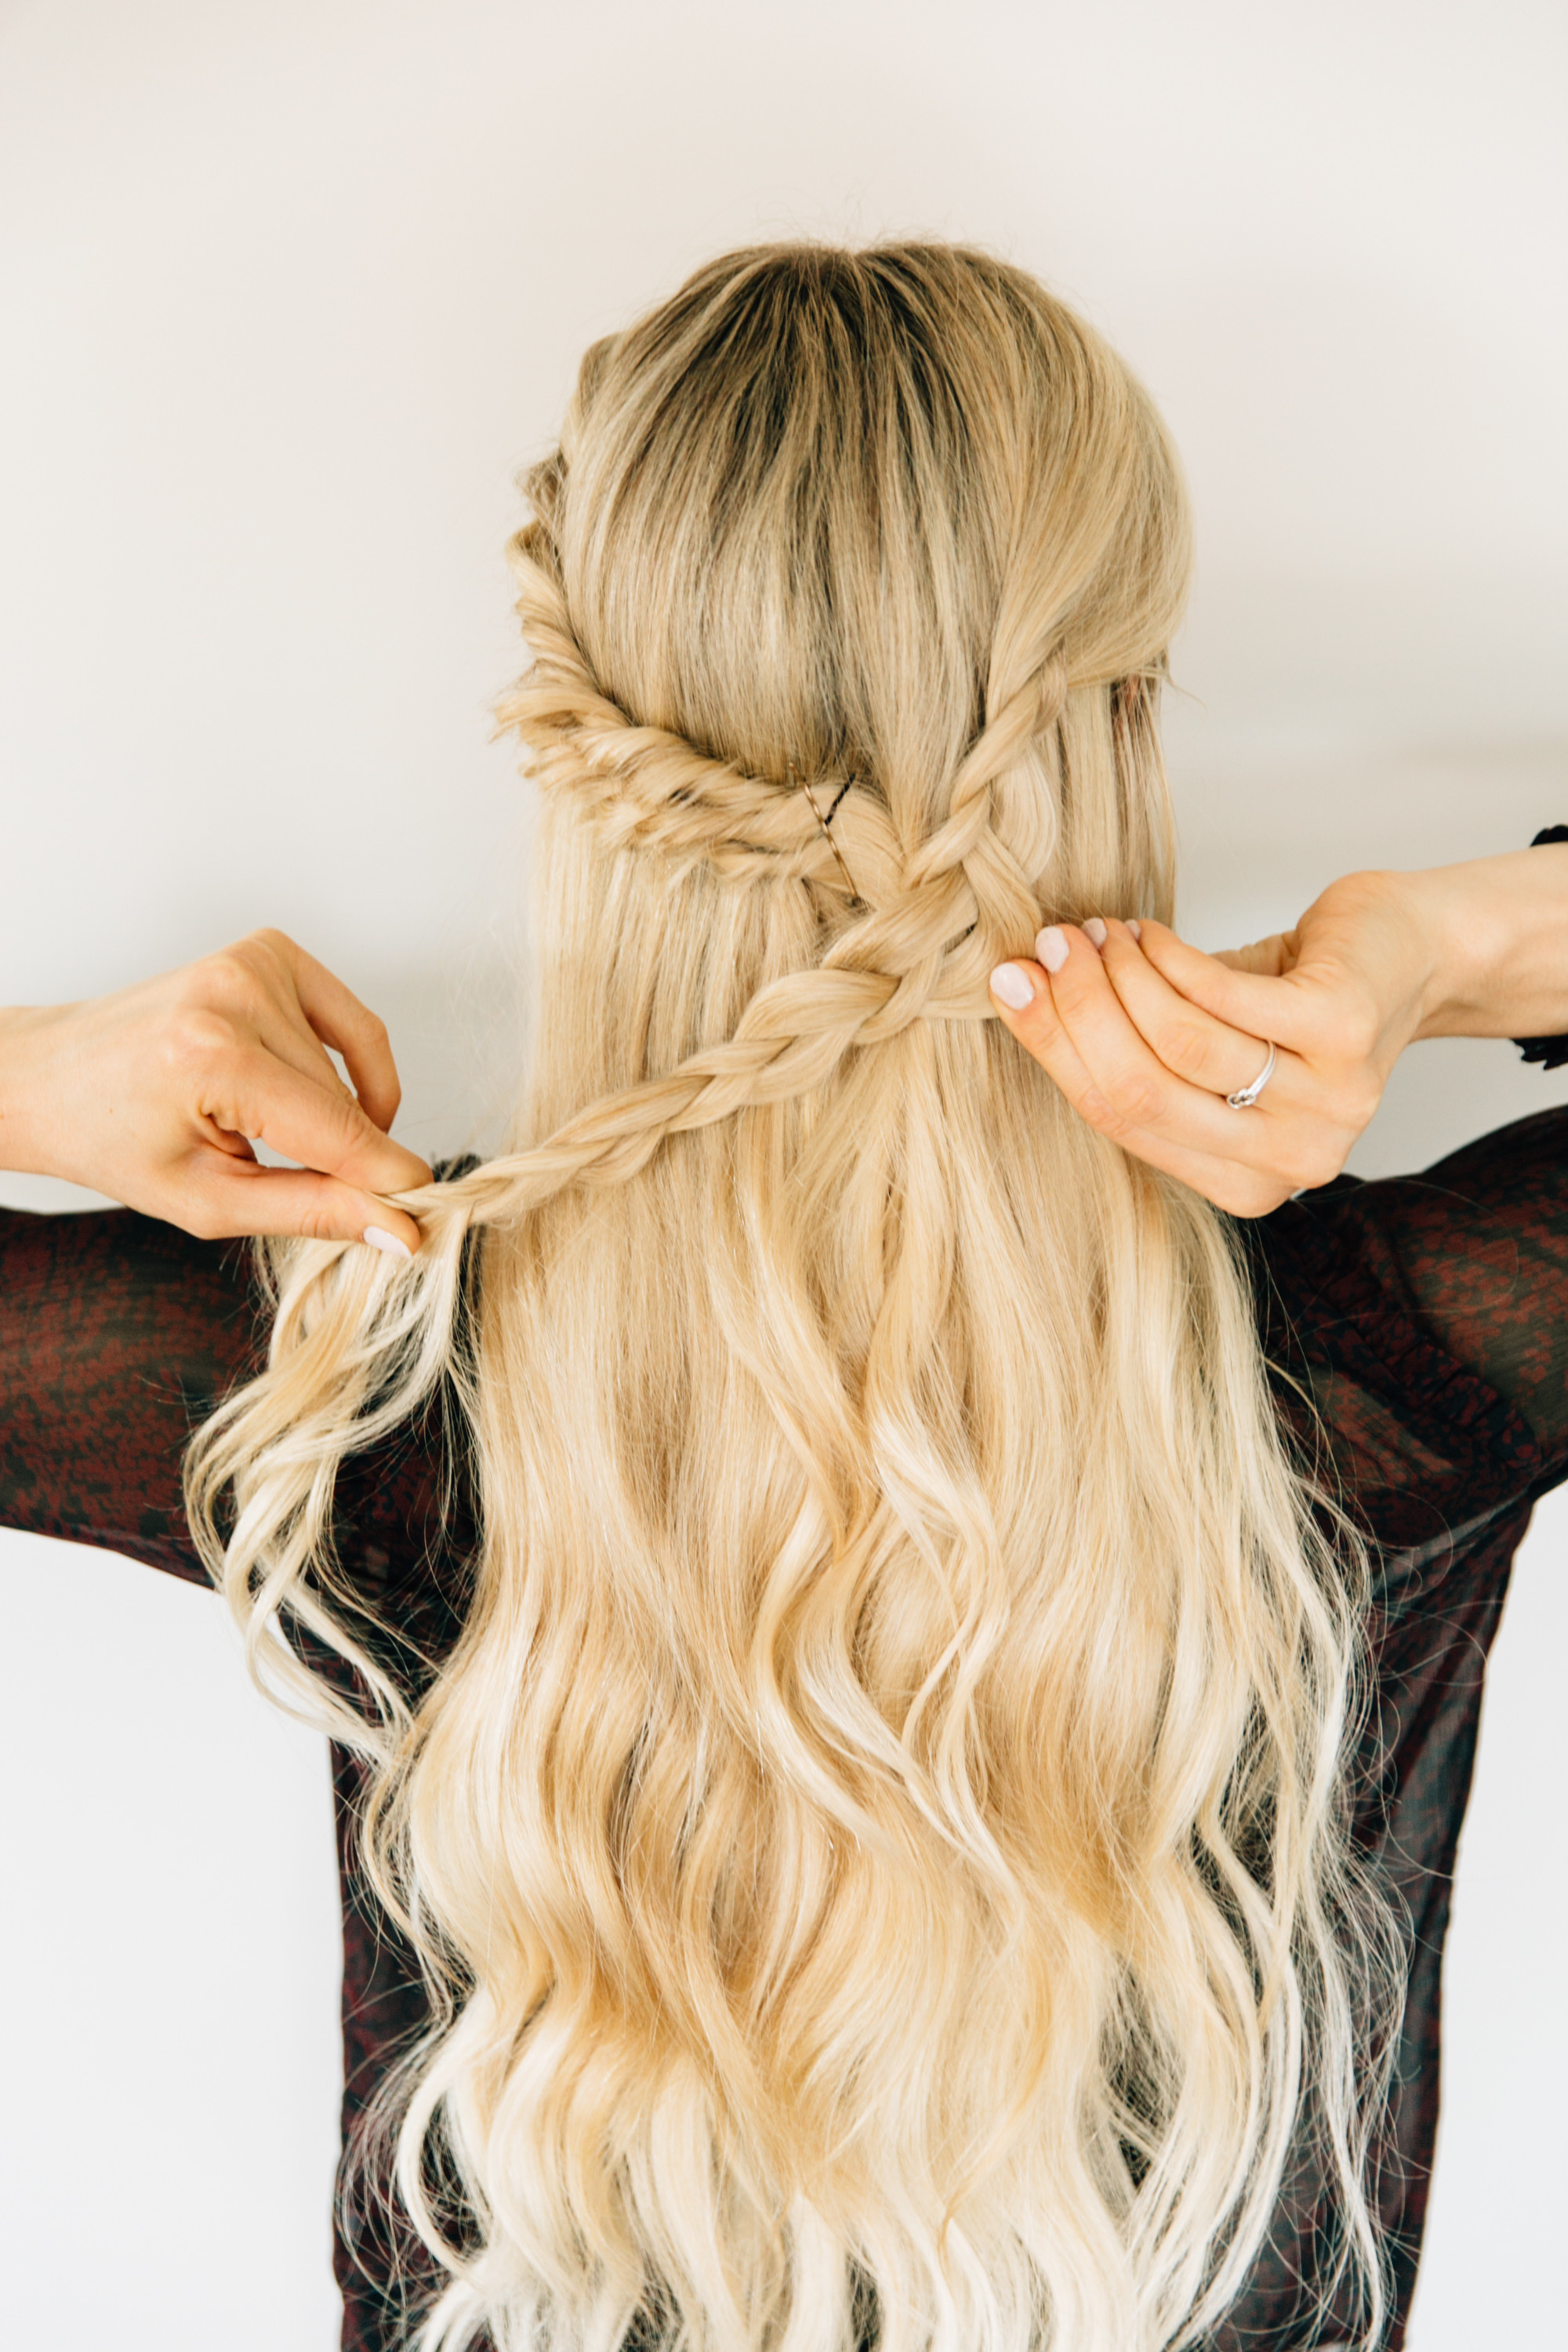 Dreamy Hair and Beauty Hacks with Amber Fillerup Clark of Barefoot Blonde